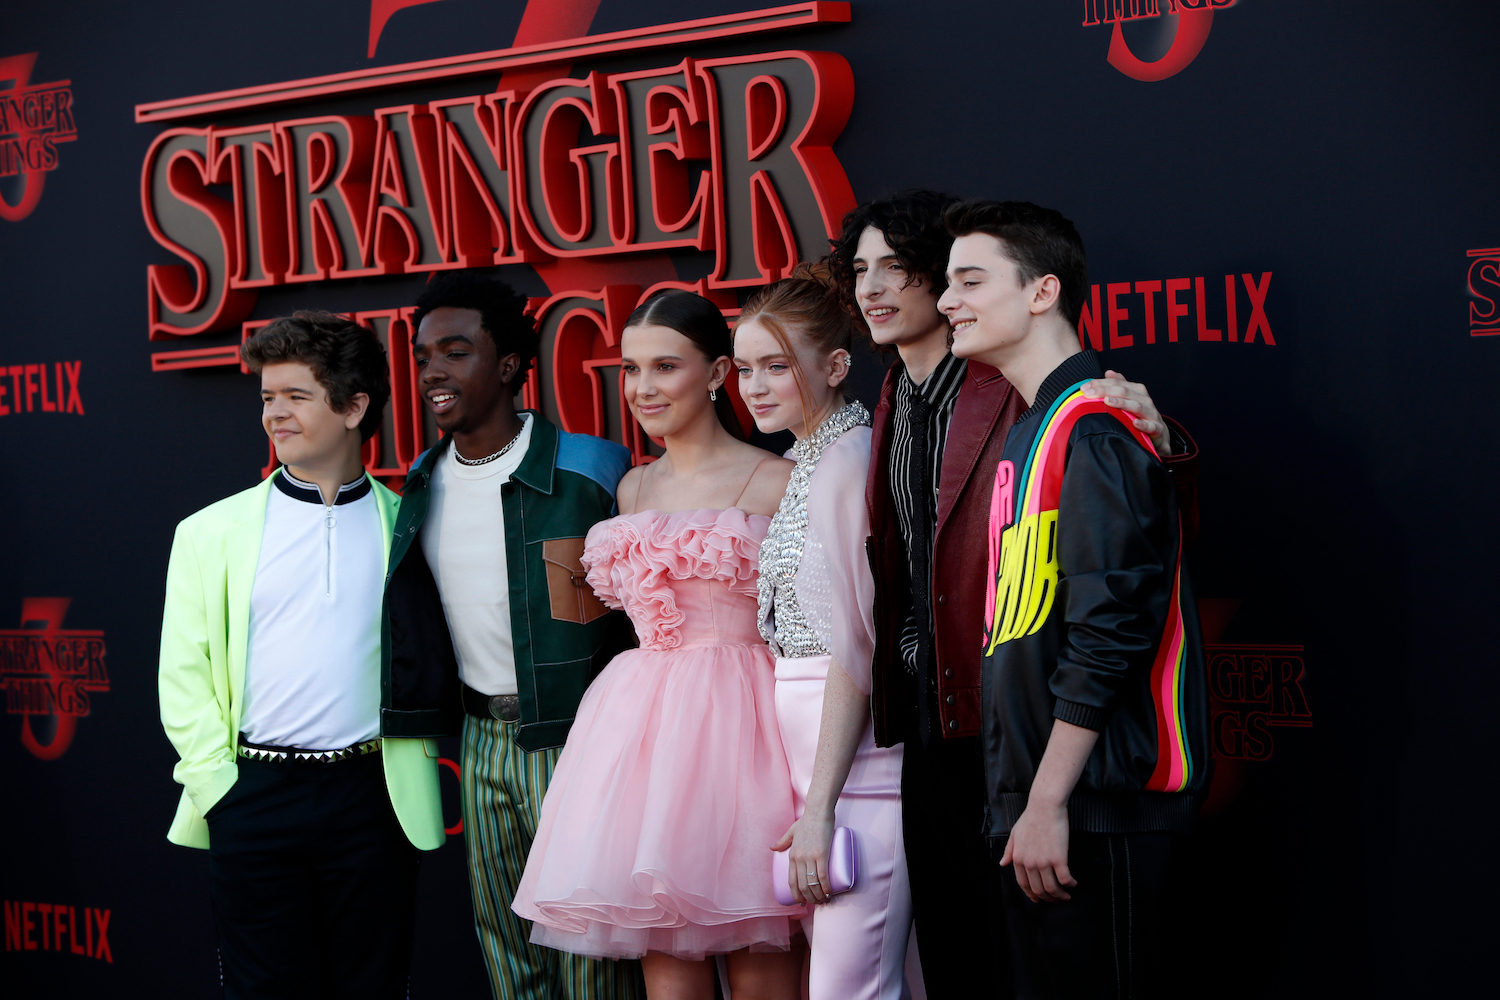 Stranger Things cast at the season 3 premiere